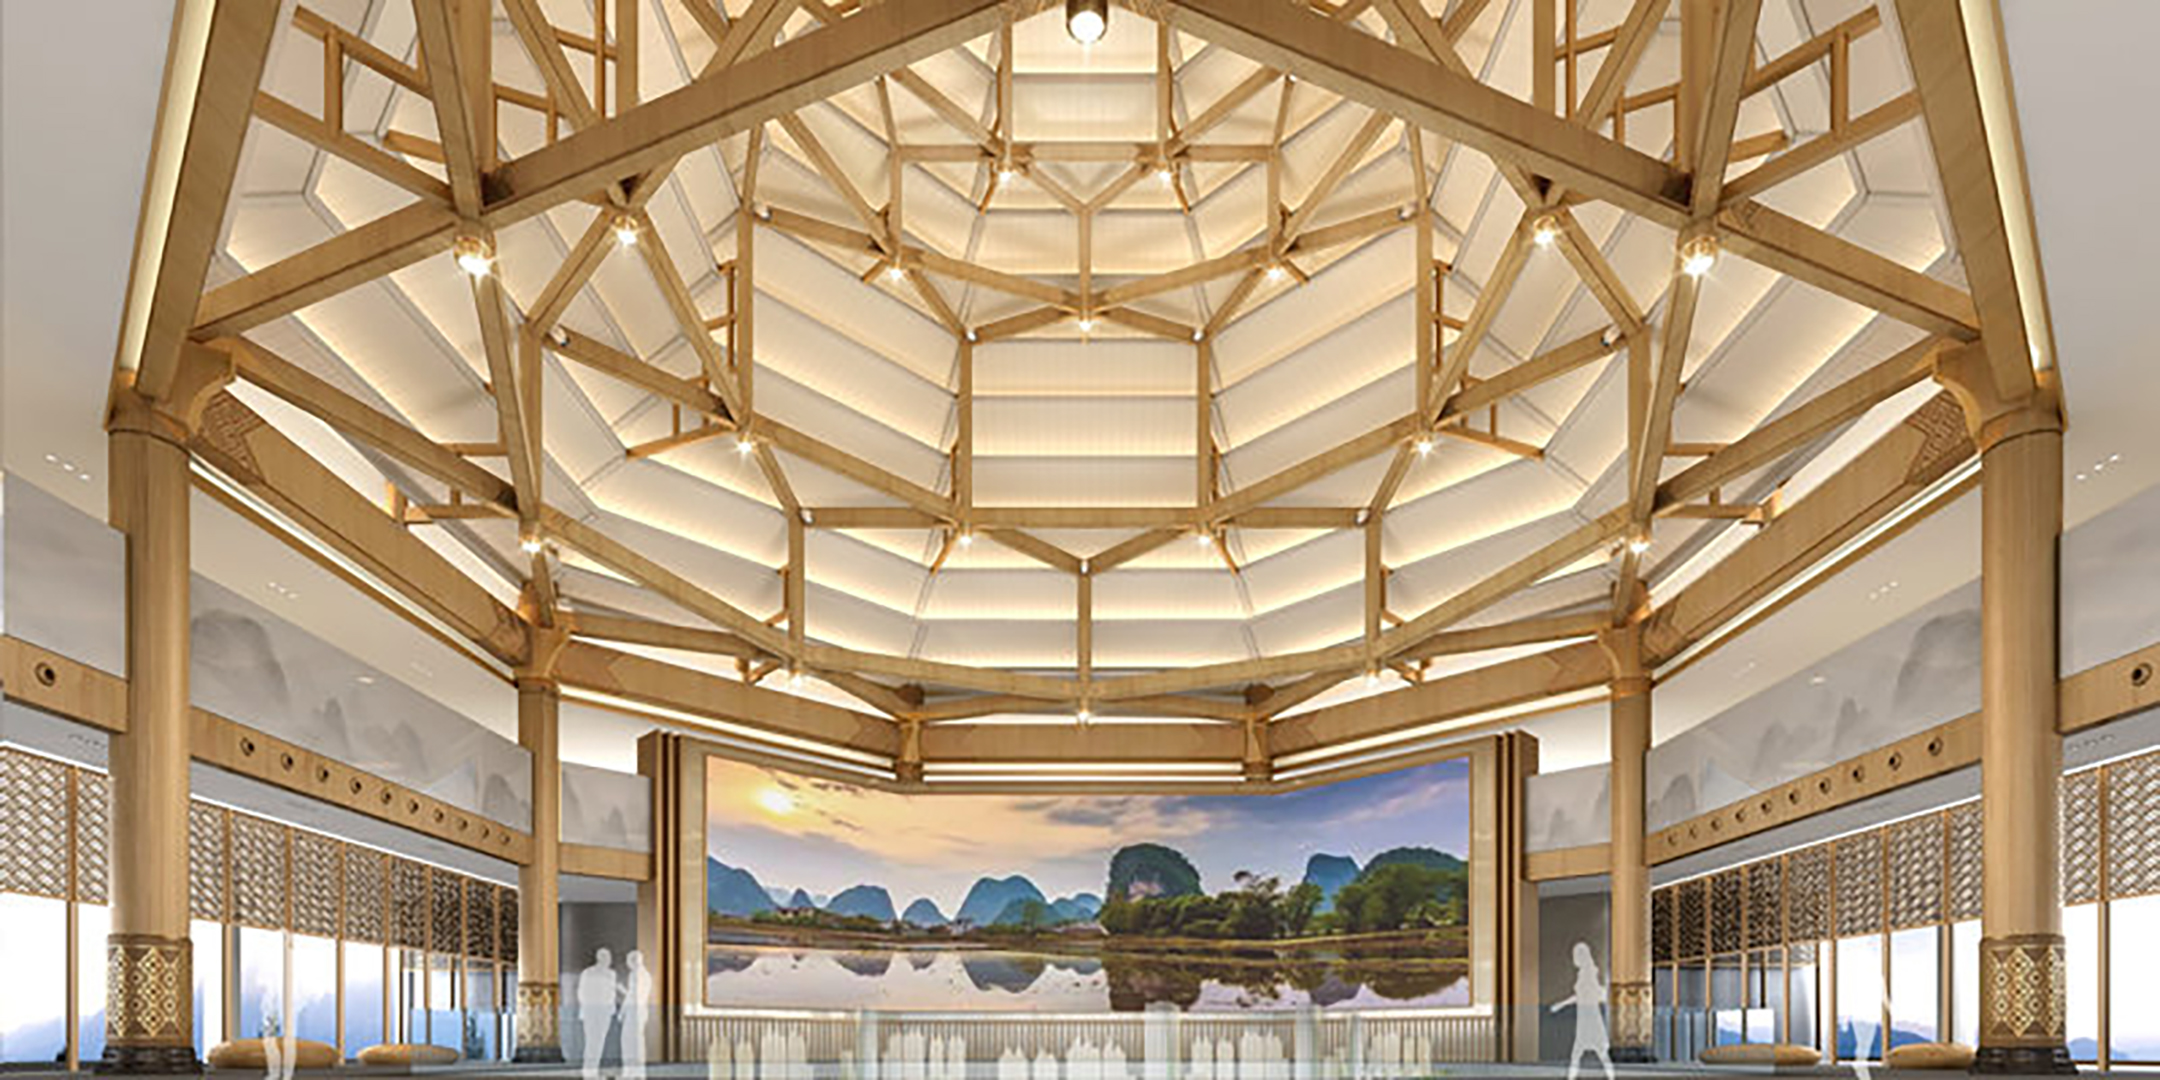 46-guilin-yanshan-wanda-display-center